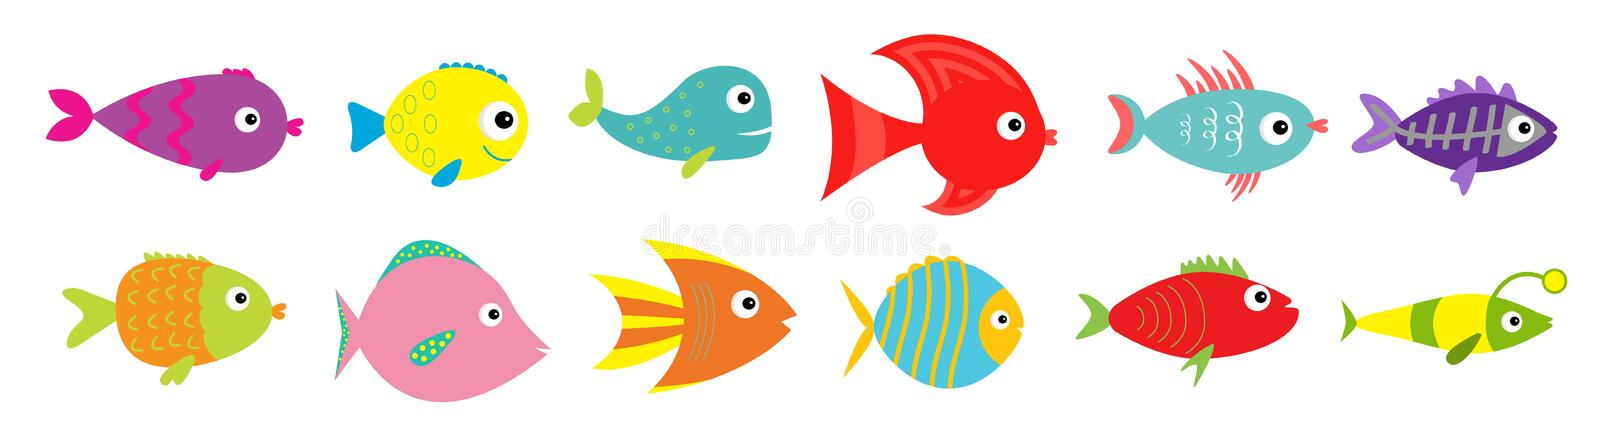 Free Fishing Baby Cliparts, Download Free Clip Art, Free Clip Art on Clipart  Library